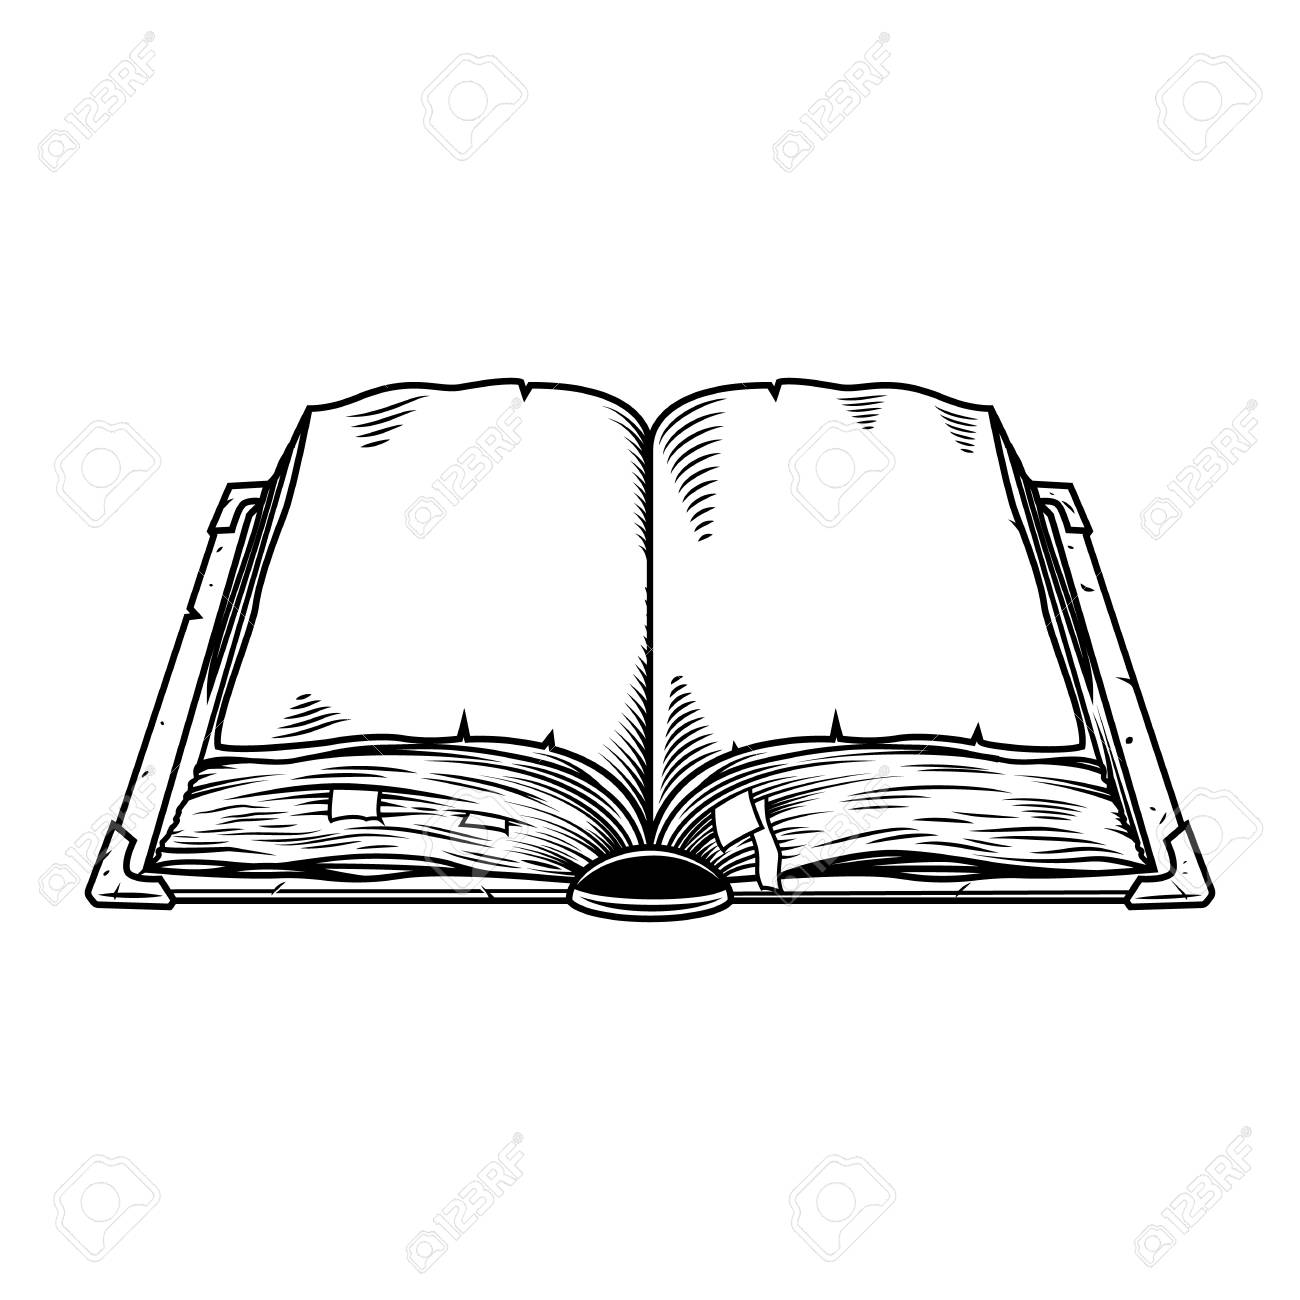 Old vintage book isolated on white. Vector illustration - 107001113